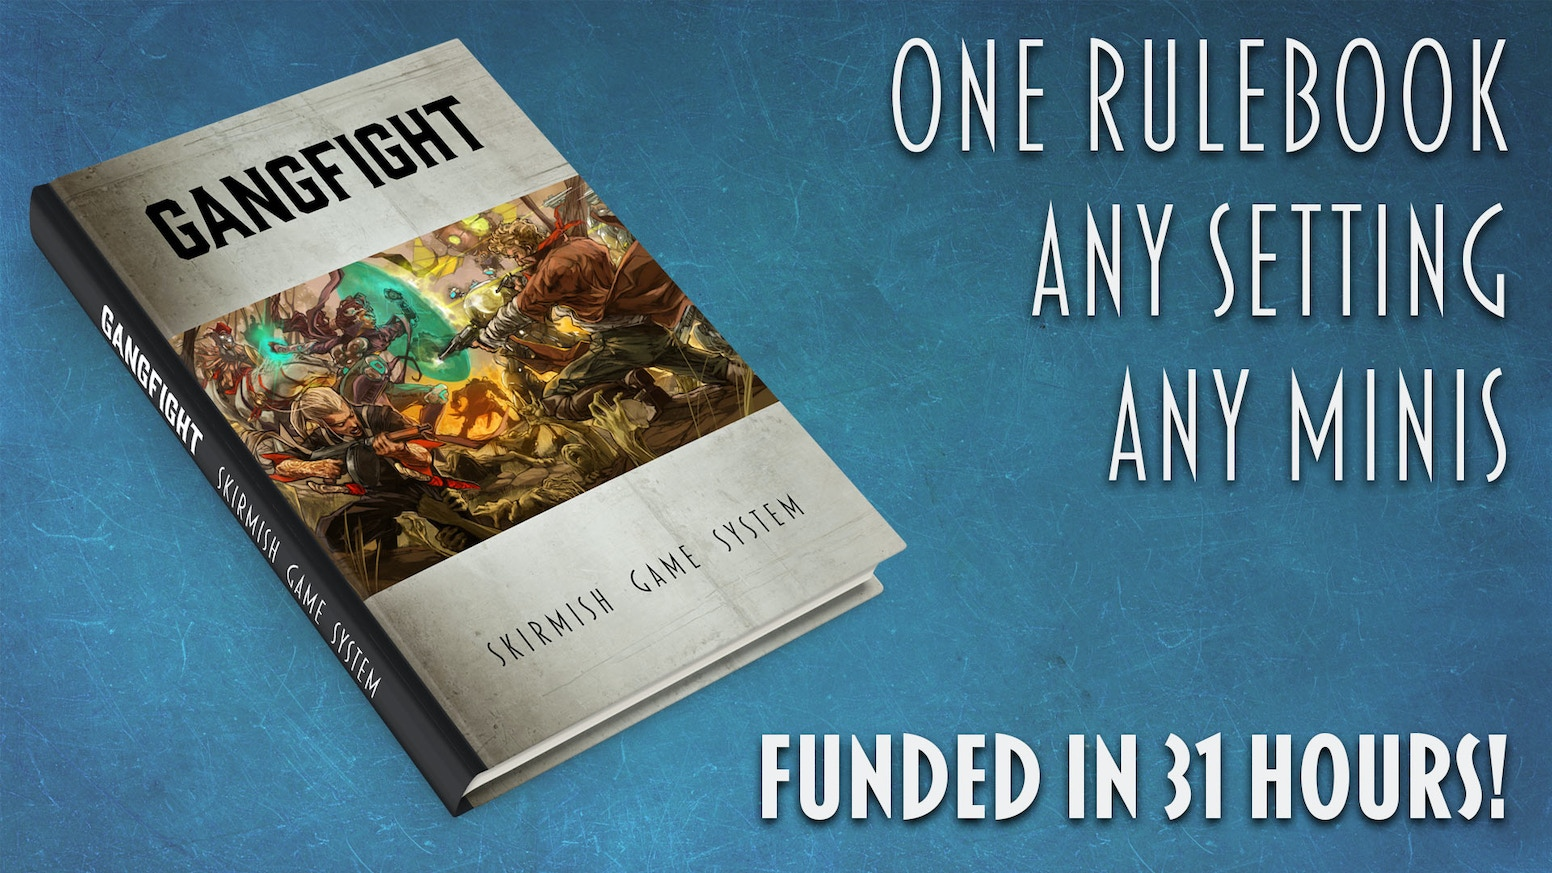 Hardcover rulebook for our universal tabletop skirmish game rules. Play with any minis you want, in any setting you want!